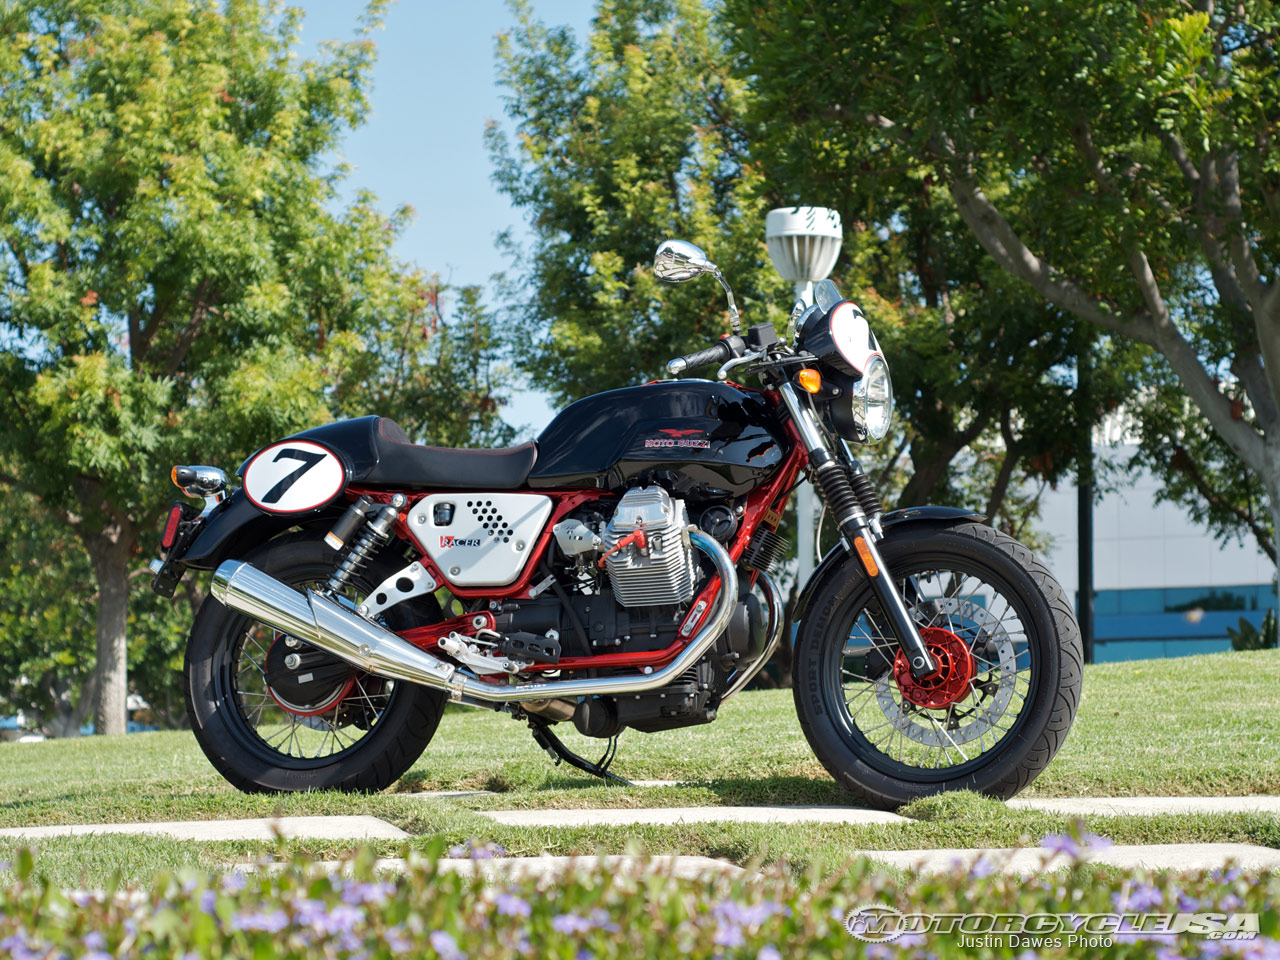 Moto Guzzi V7 Racer Limited Edition images #109592